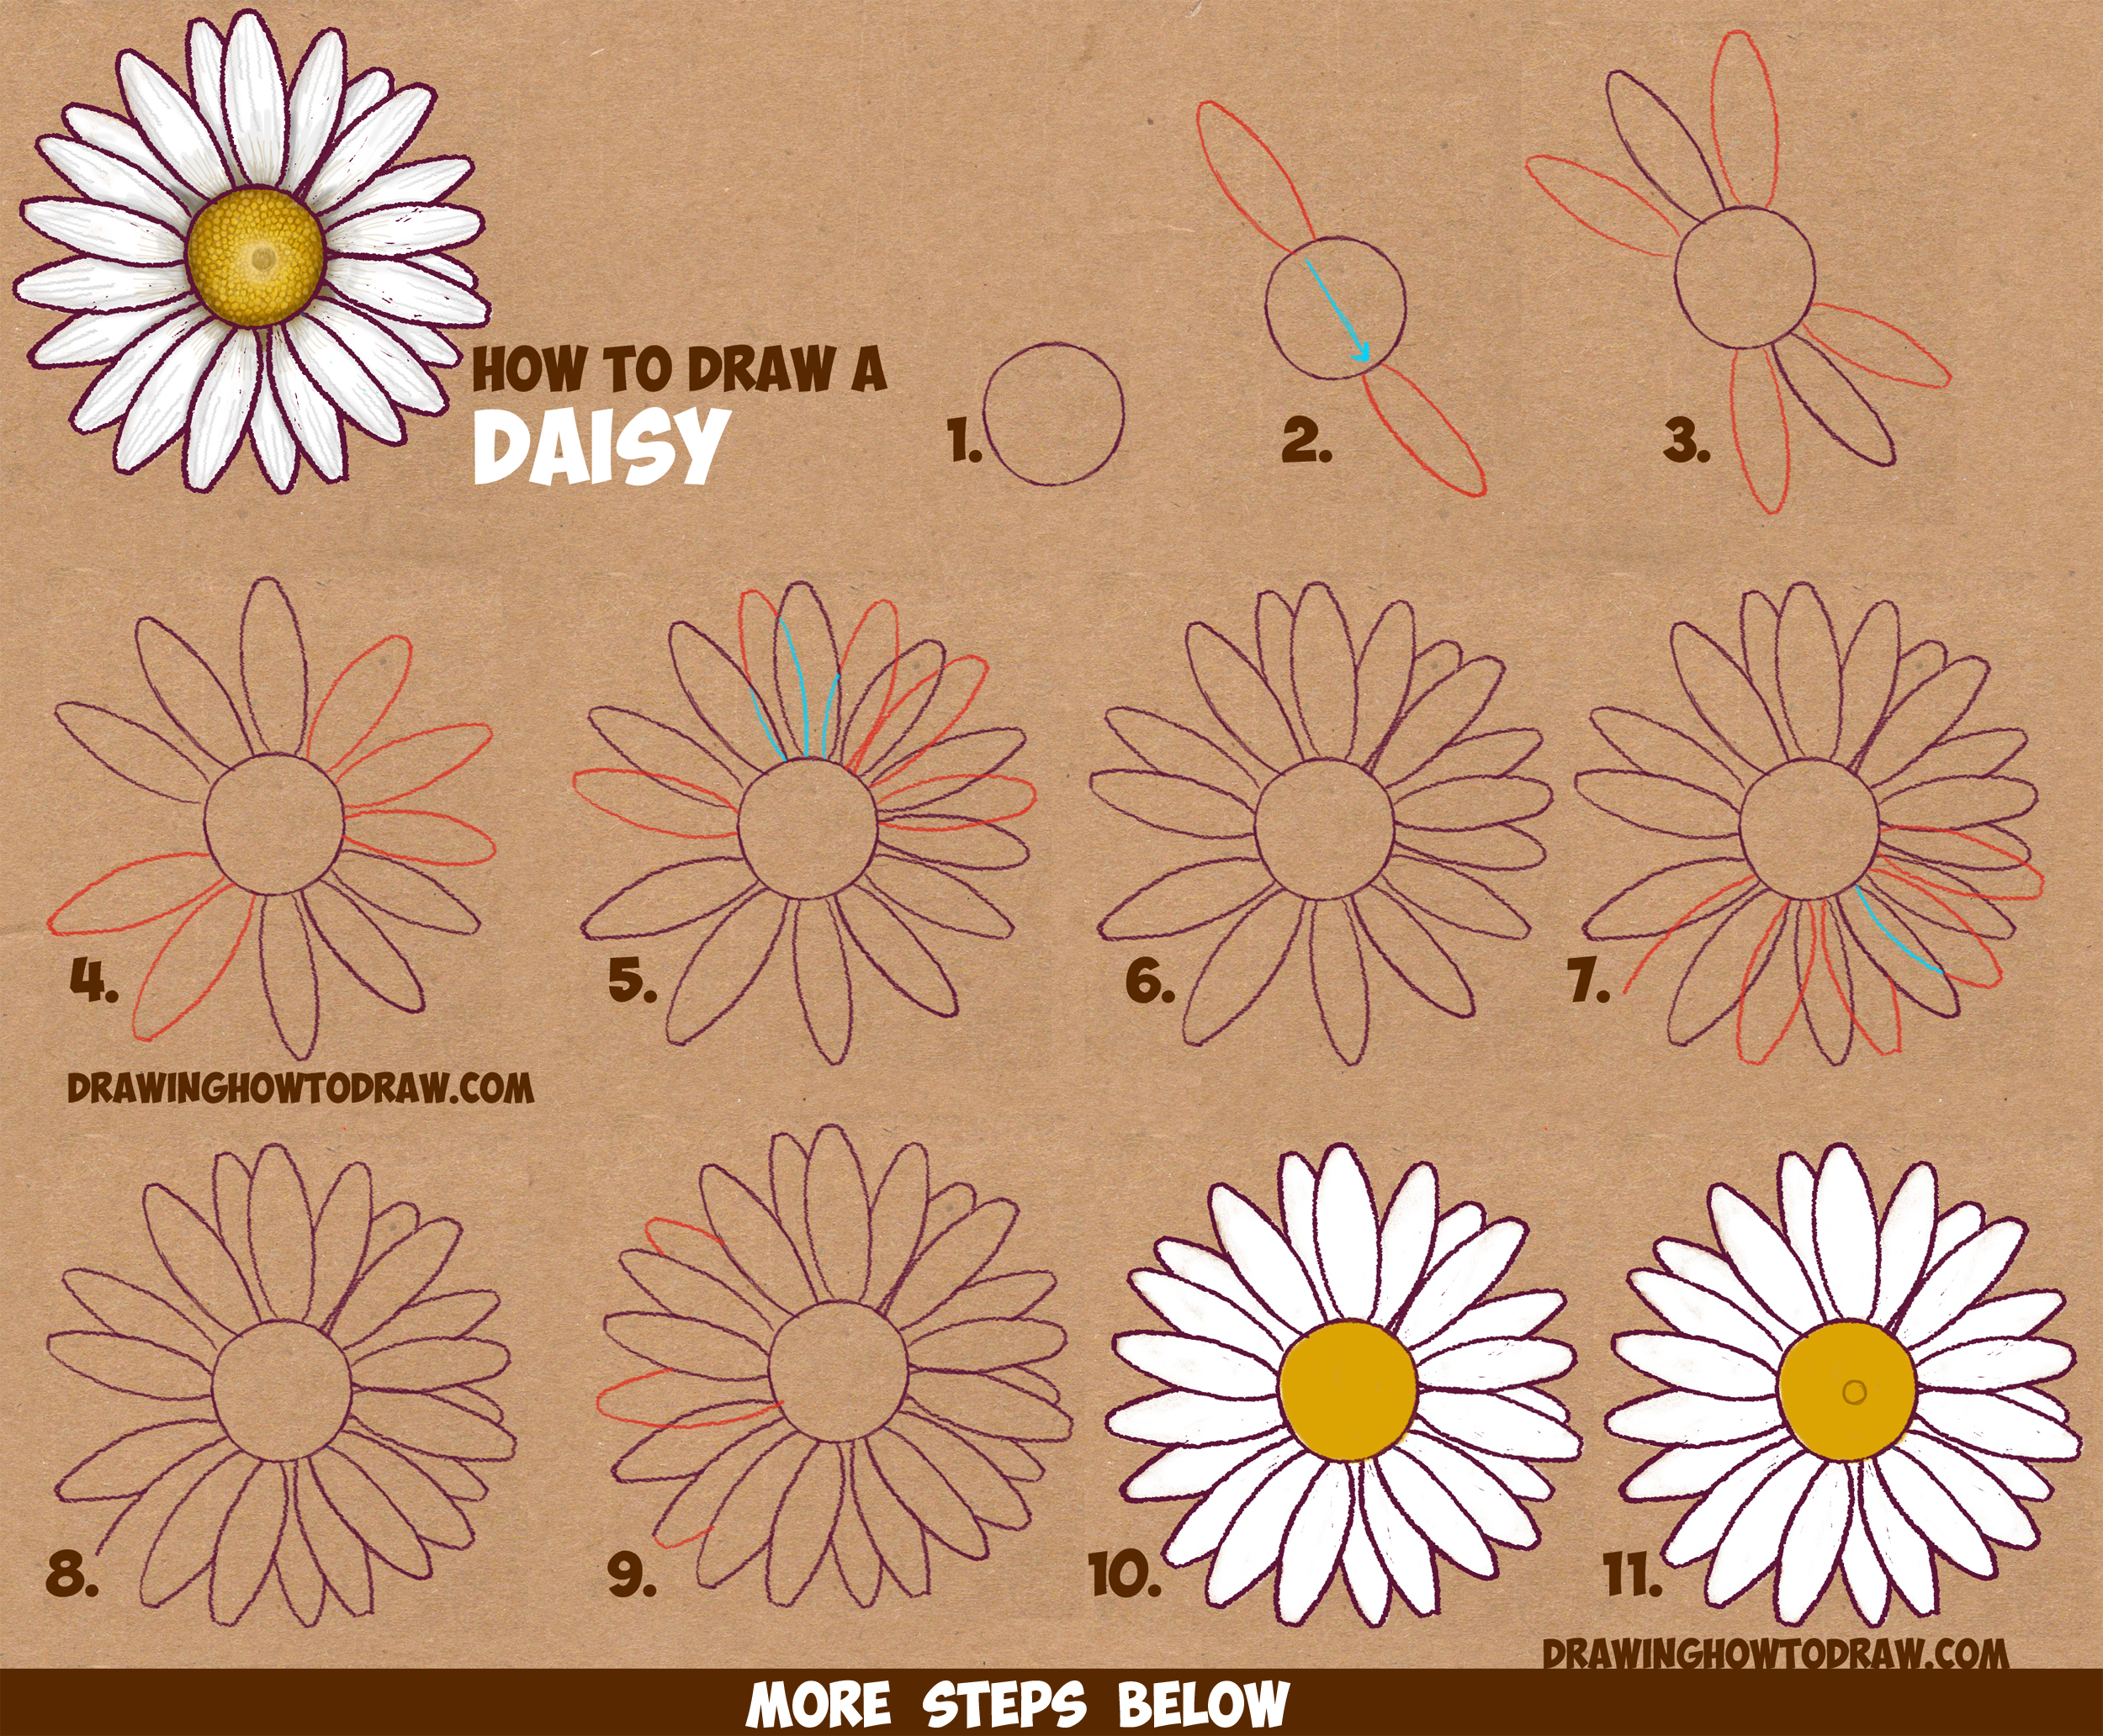 Easy daisy drawing at getdrawings free for personal use easy 2500x2064 daisy flower drawings how to draw a daisy flower daisies in easy izmirmasajfo Choice Image